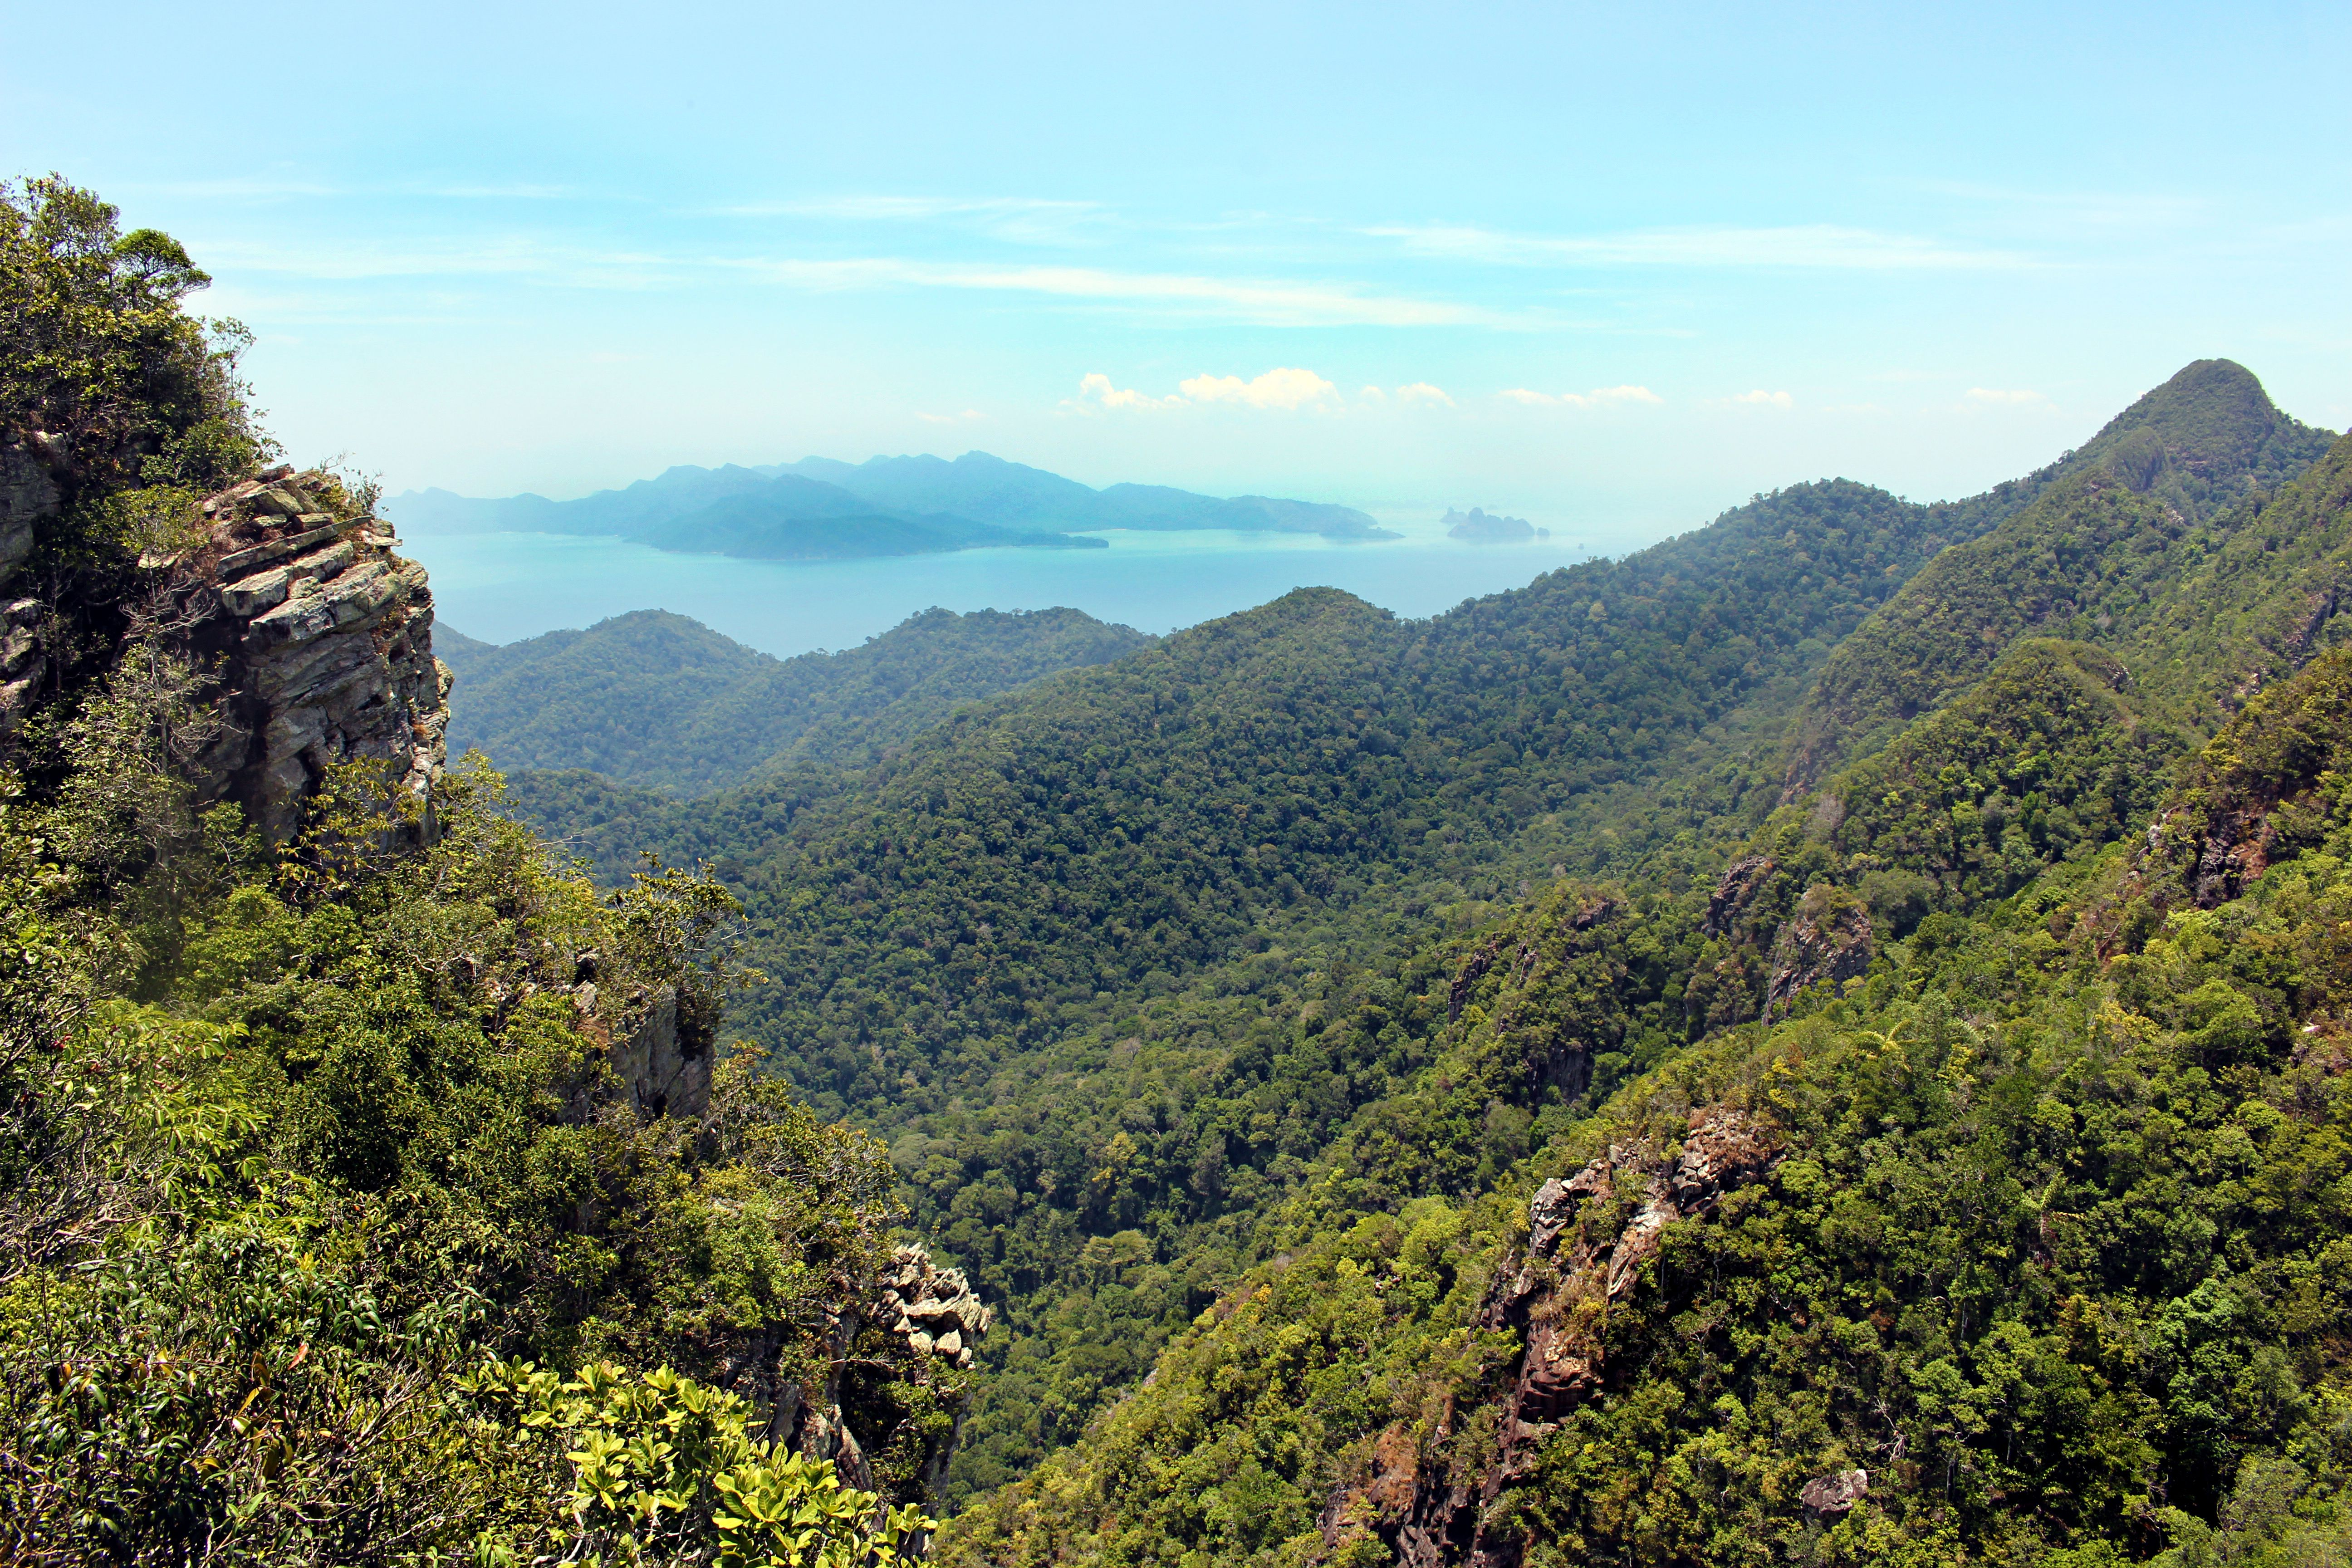 Green mountains and distant coast in Langkawi